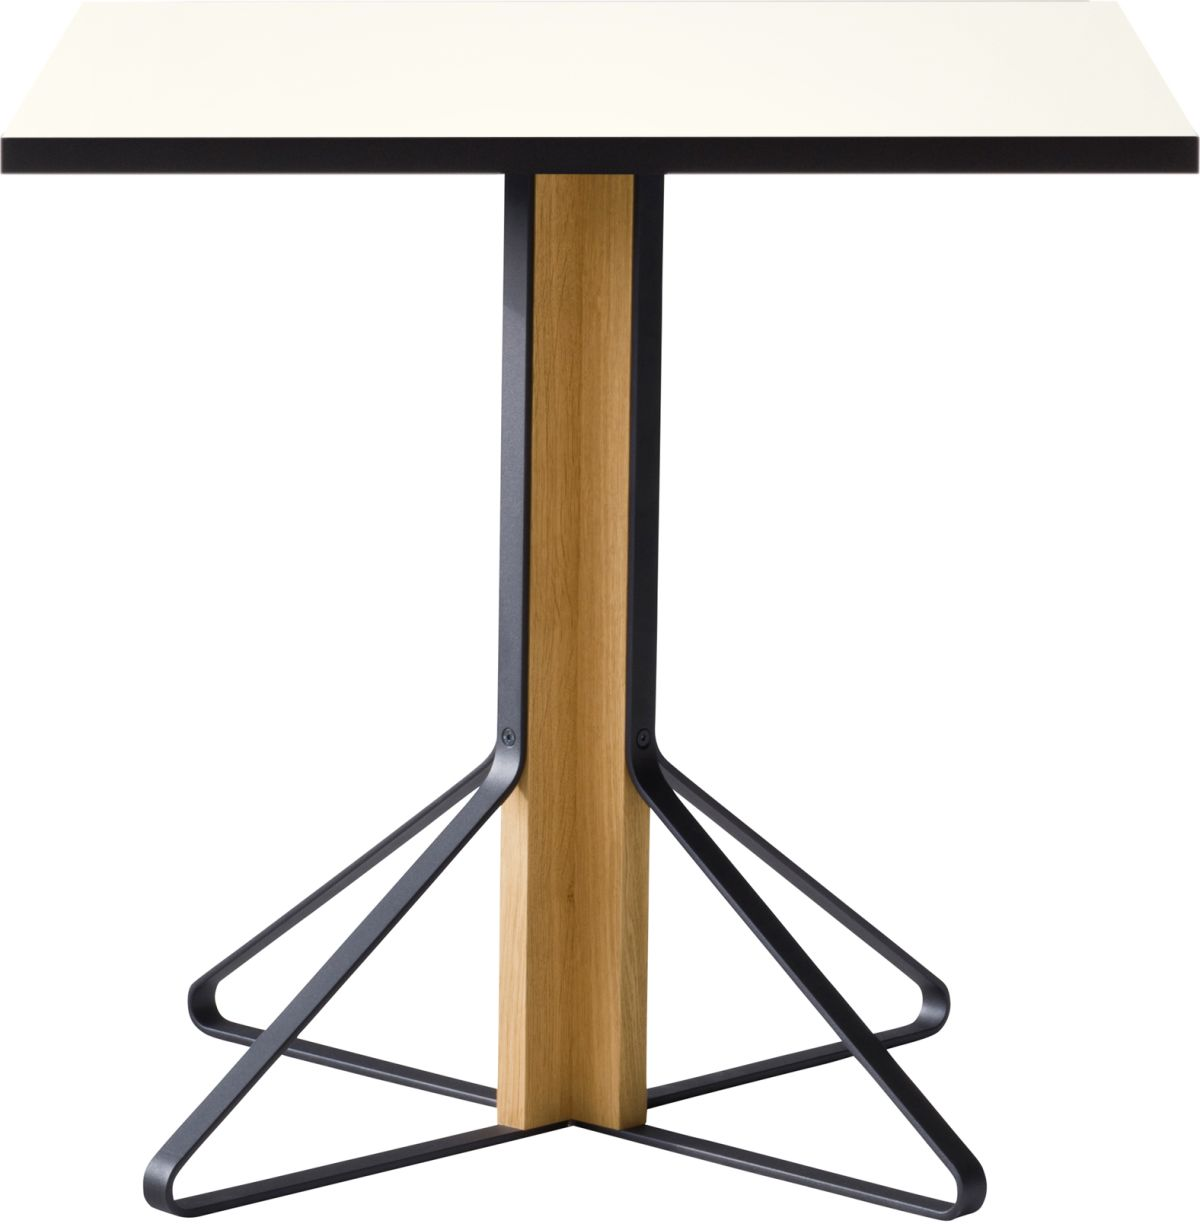 Kaari_Table_square_legs natural oak_top white HPL